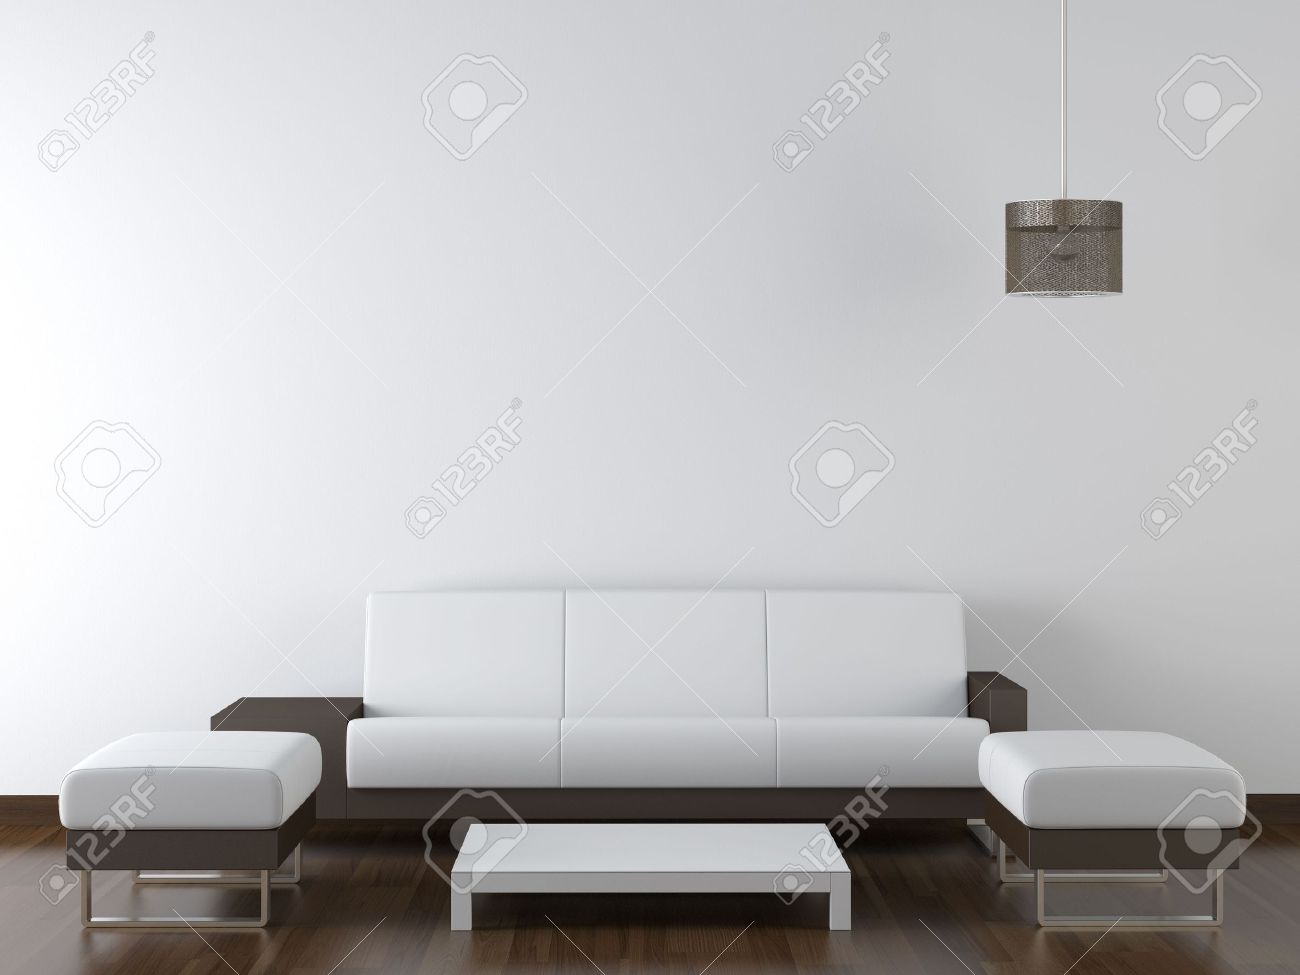 Interior Design Of Modern White And Brown Living Room Furniture Against  White Wall With A Lamp Part 61